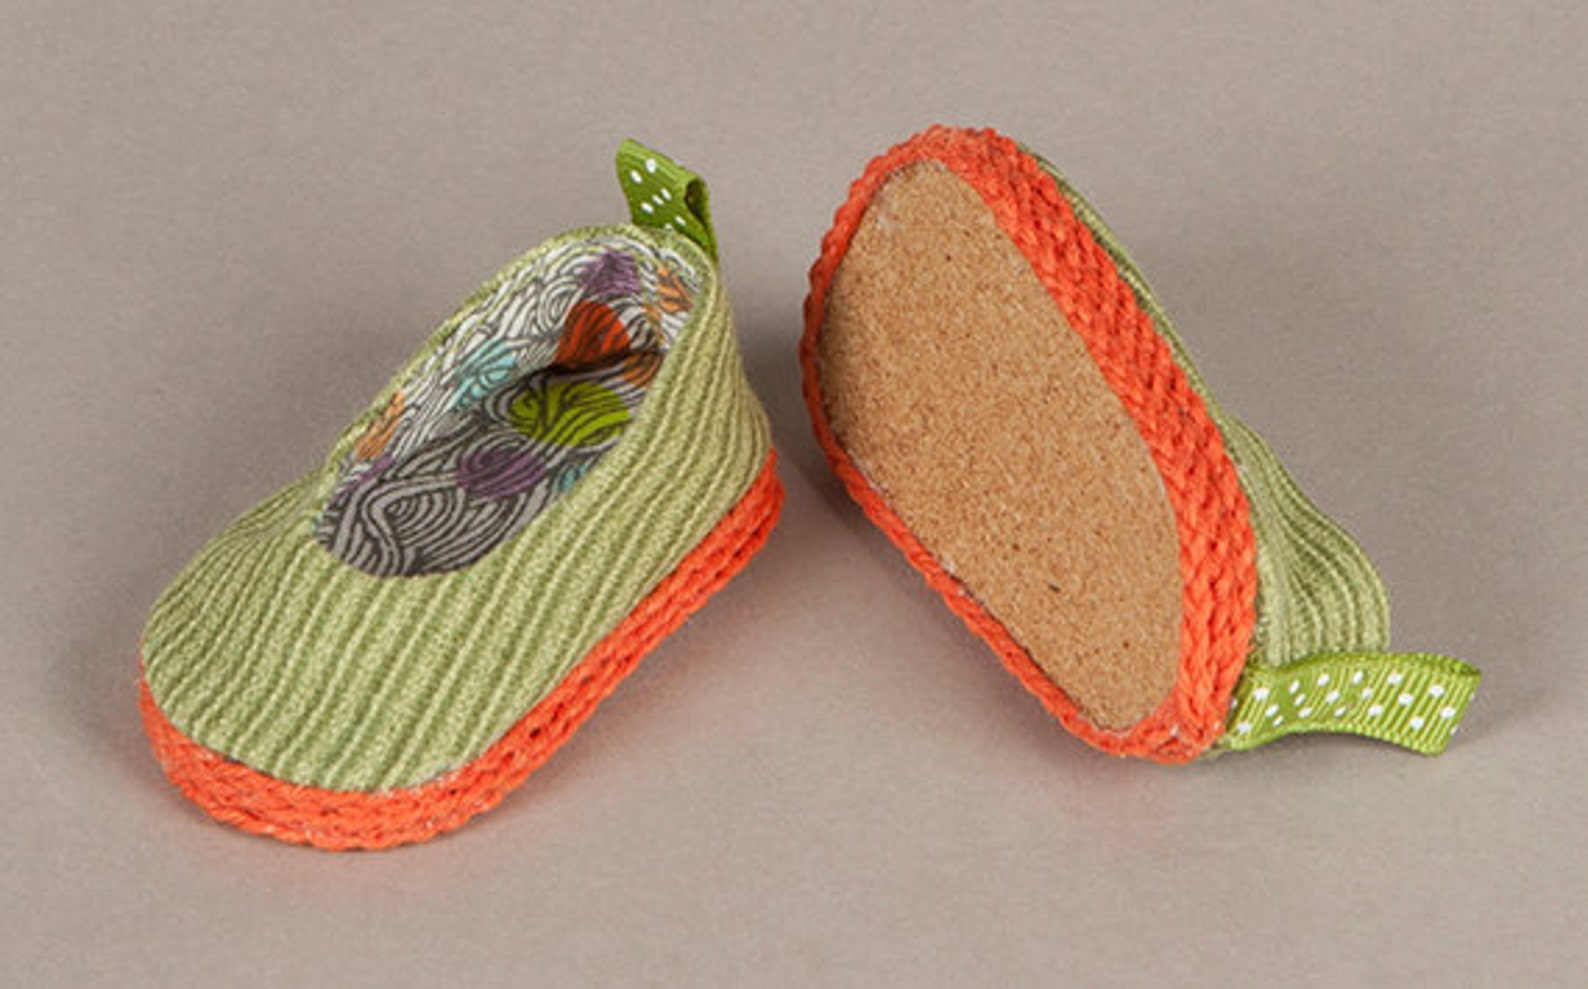 sale! - handmade footwear - ballet flats - lime green and orange! - fits 18